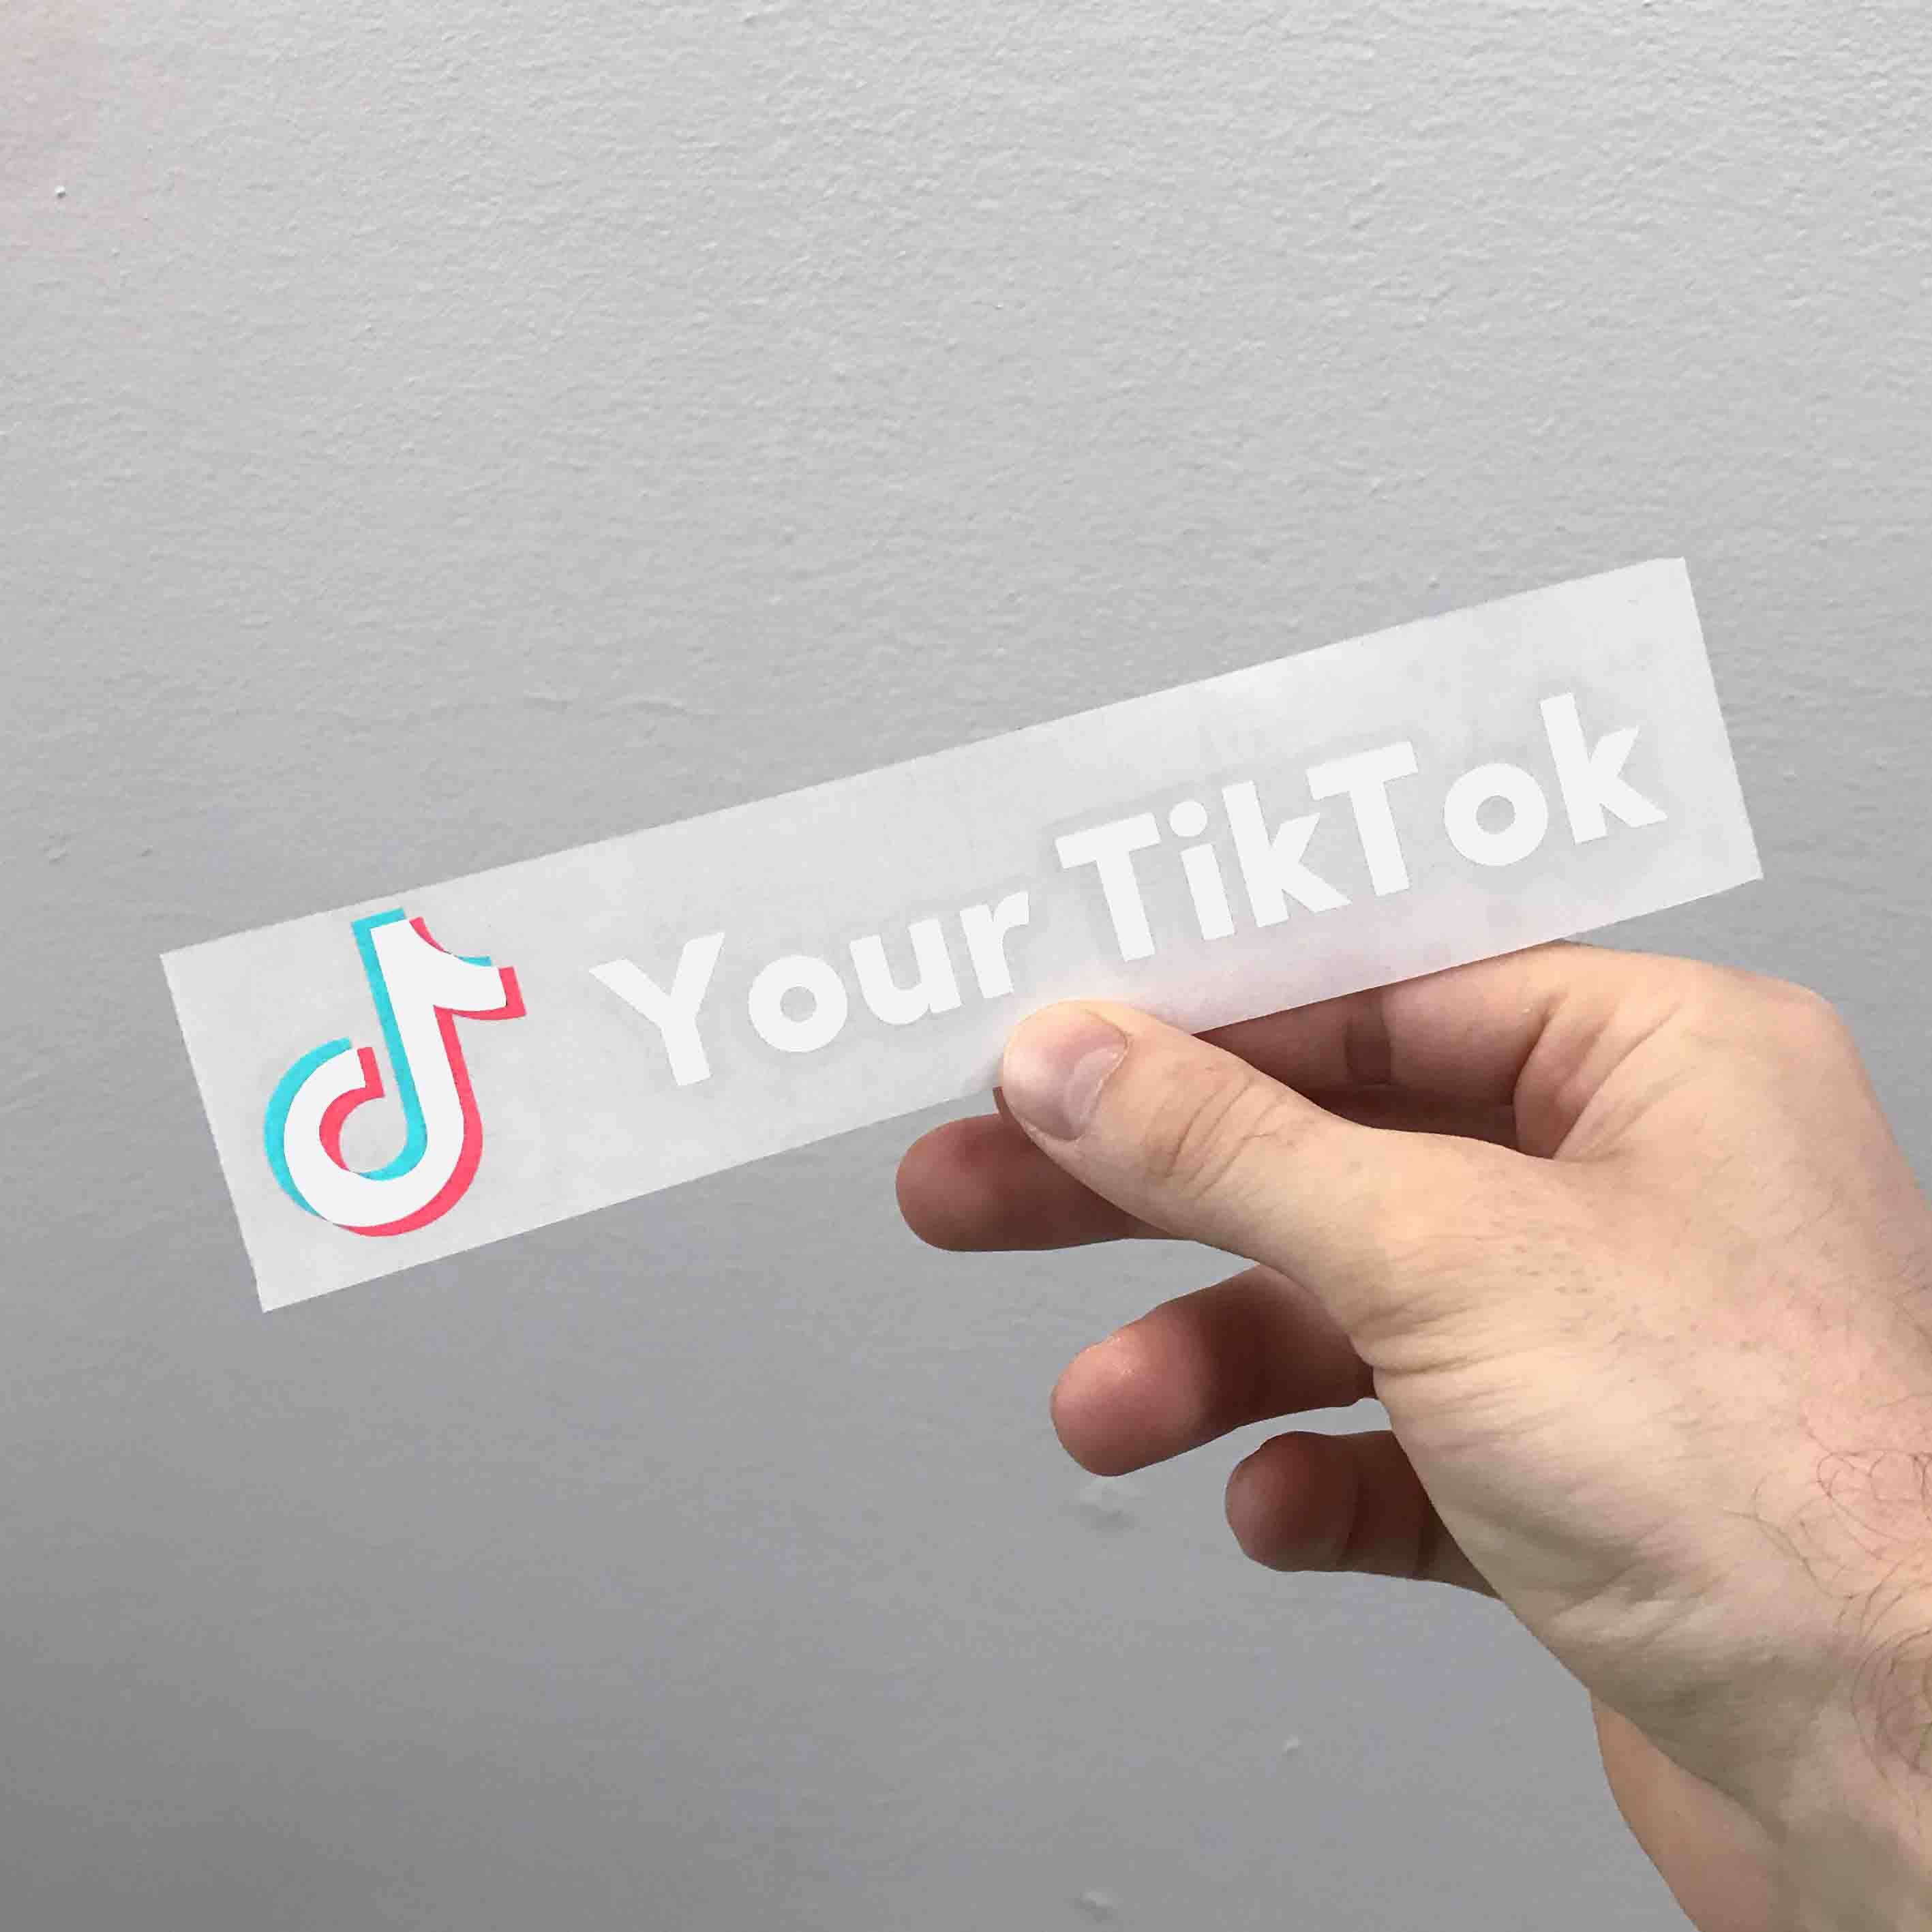 TikTok social network sticker with your account name on it. Available in light and dark color variations. Sticker is contour cut out of premium outdoor vinyls. Transparent background.